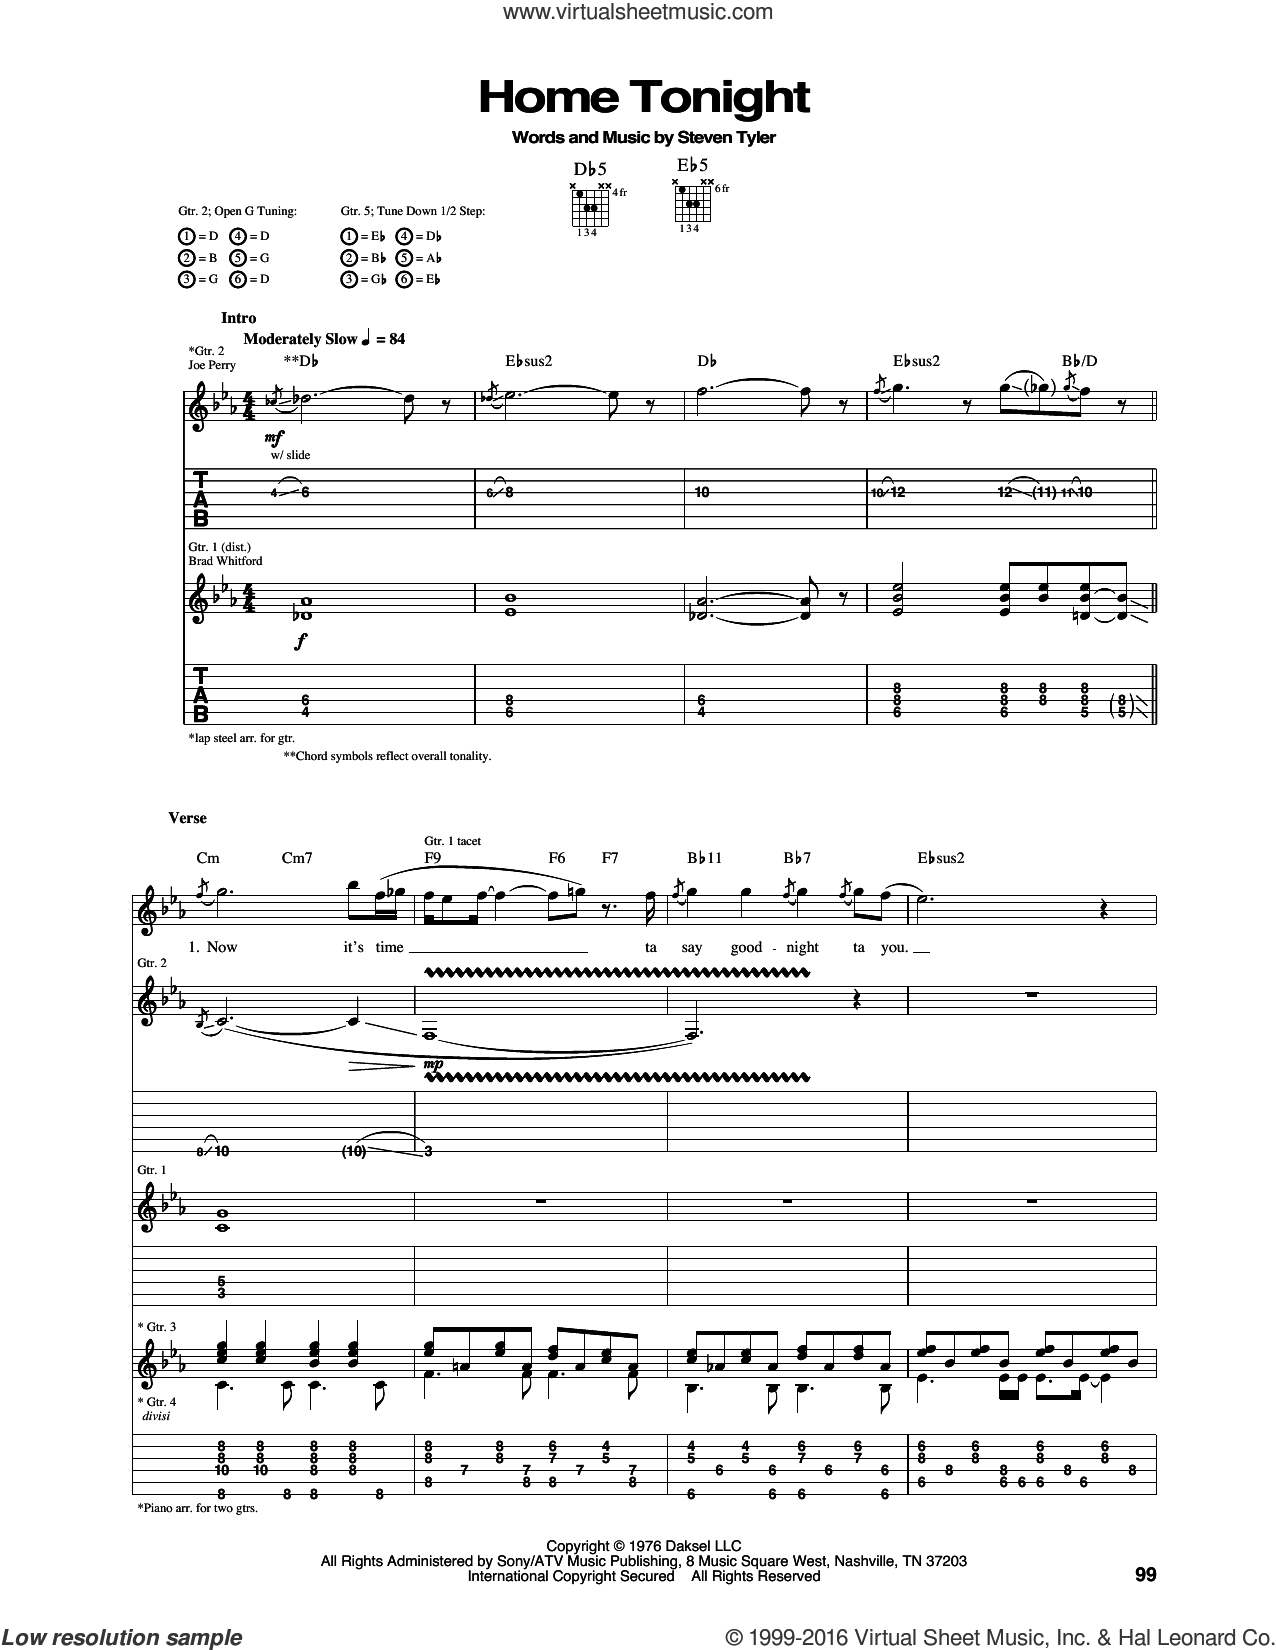 Home Tonight sheet music for guitar (tablature) by Steven Tyler